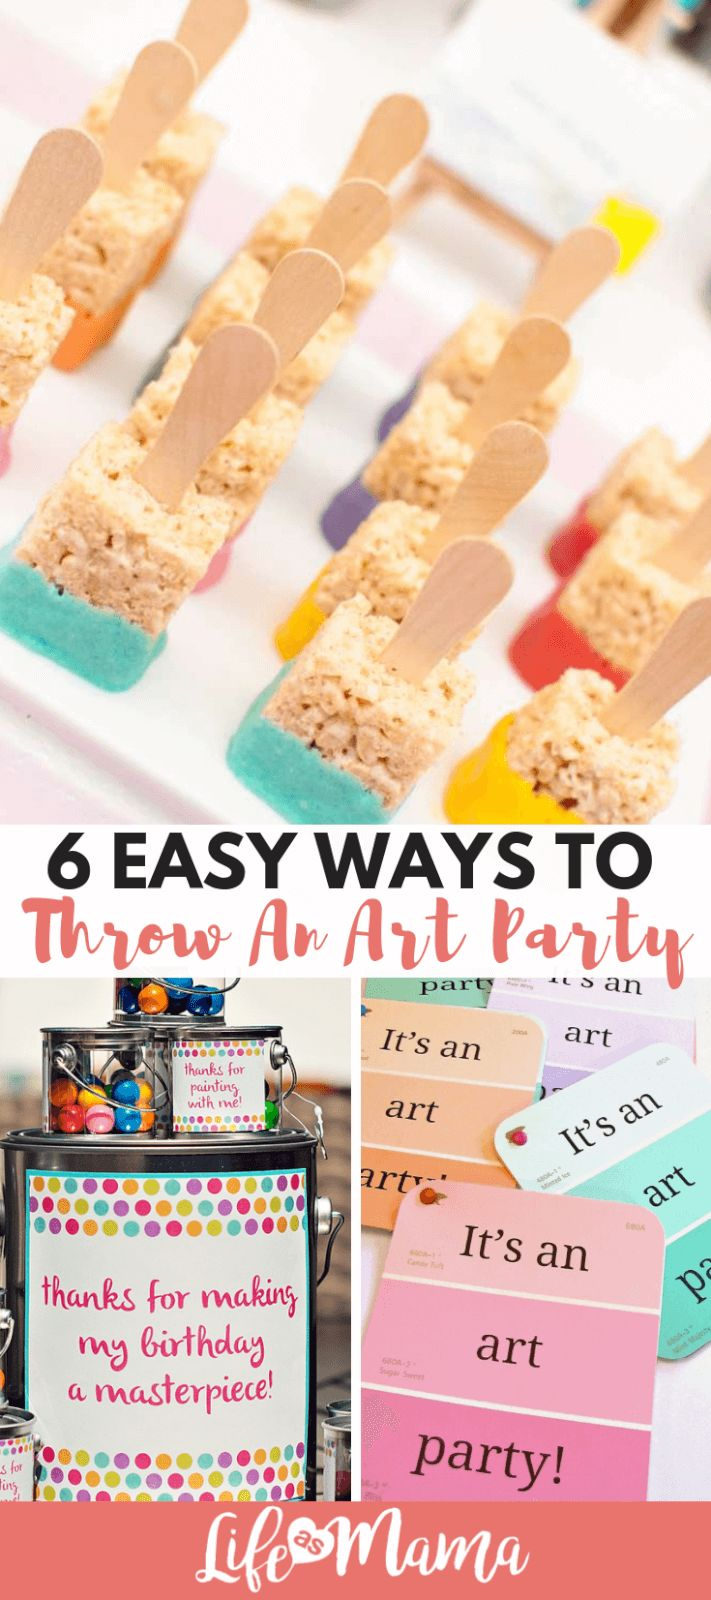 6 Easy Ways To Throw An Art Party